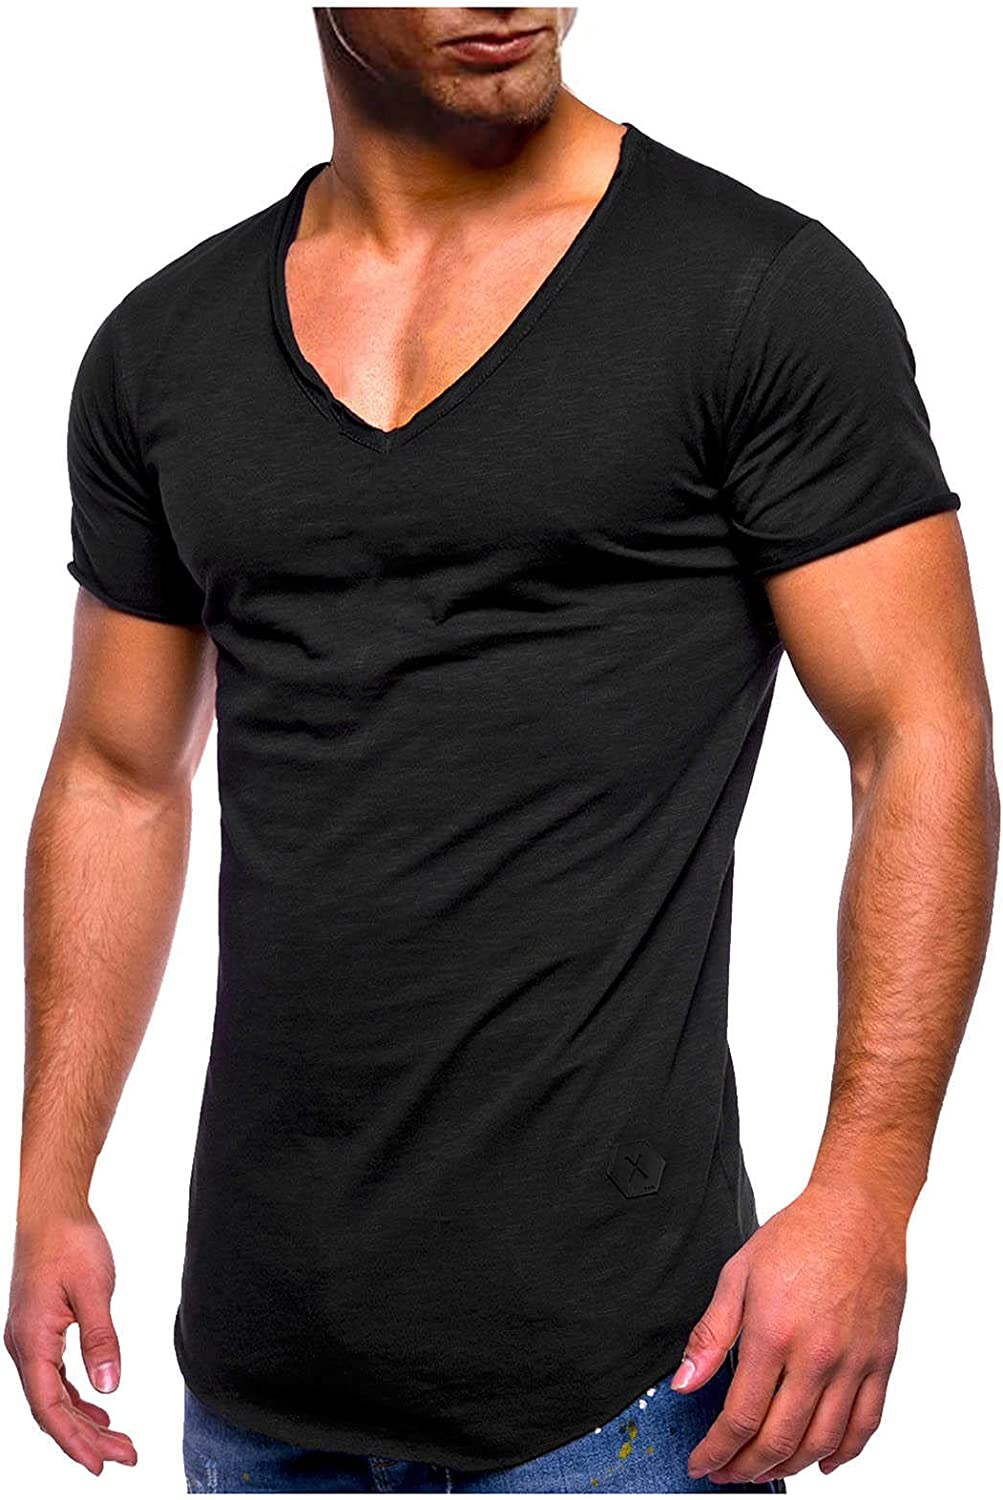 LEIYAN Mens Casual Muscle Tee Shirts Summer Short Sleeve Plus Size V-Neck Outdoor Athletic Workout T-Shirts for Running